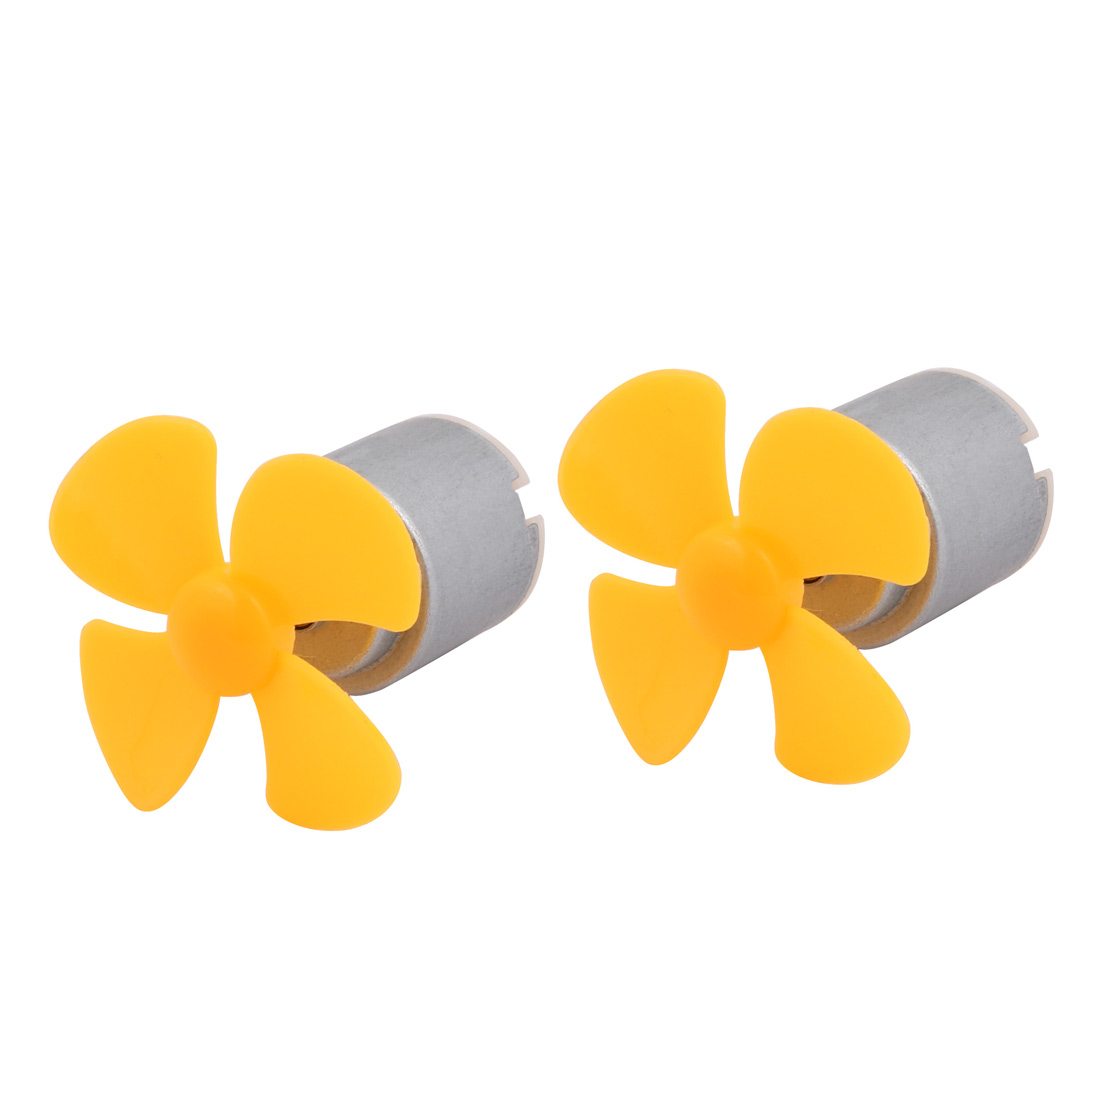 2Pcs DC 3V 16500RPM High Torque Motor 4 Vanes 40mm Dia Aircraft Propeller Yellow